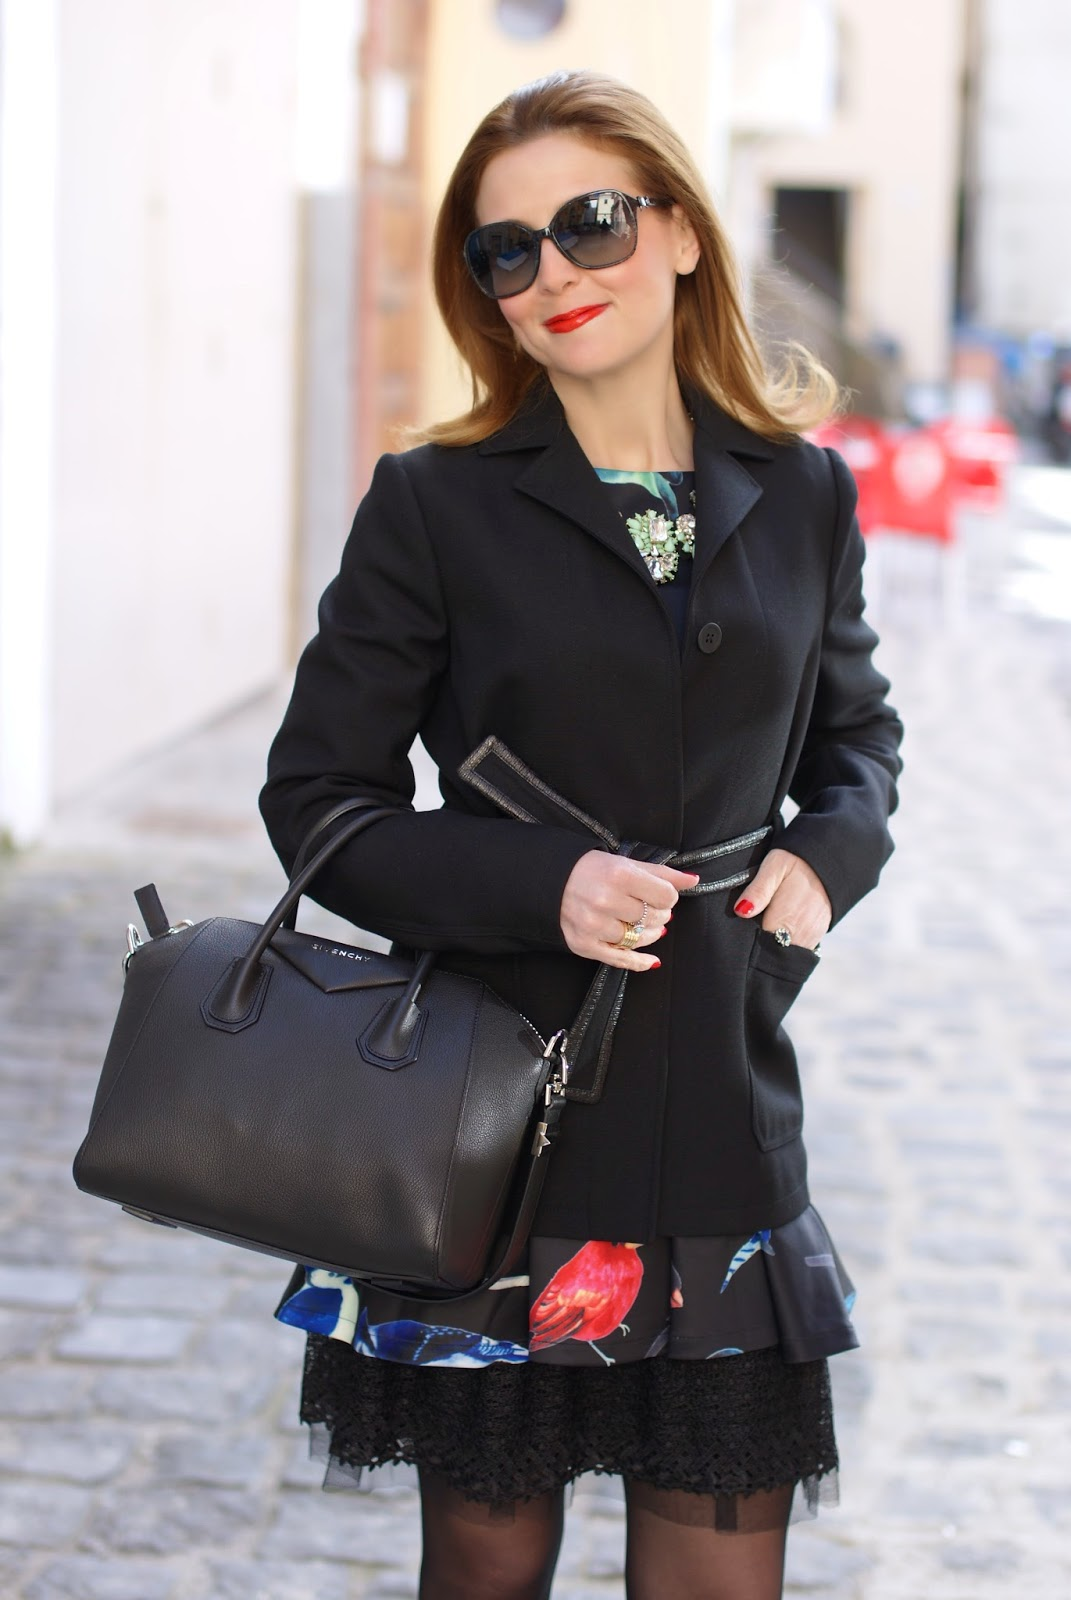 Balenciaga belted jacket, Givenchy Antigona bag, Fashion and Cookies, fashion blogger